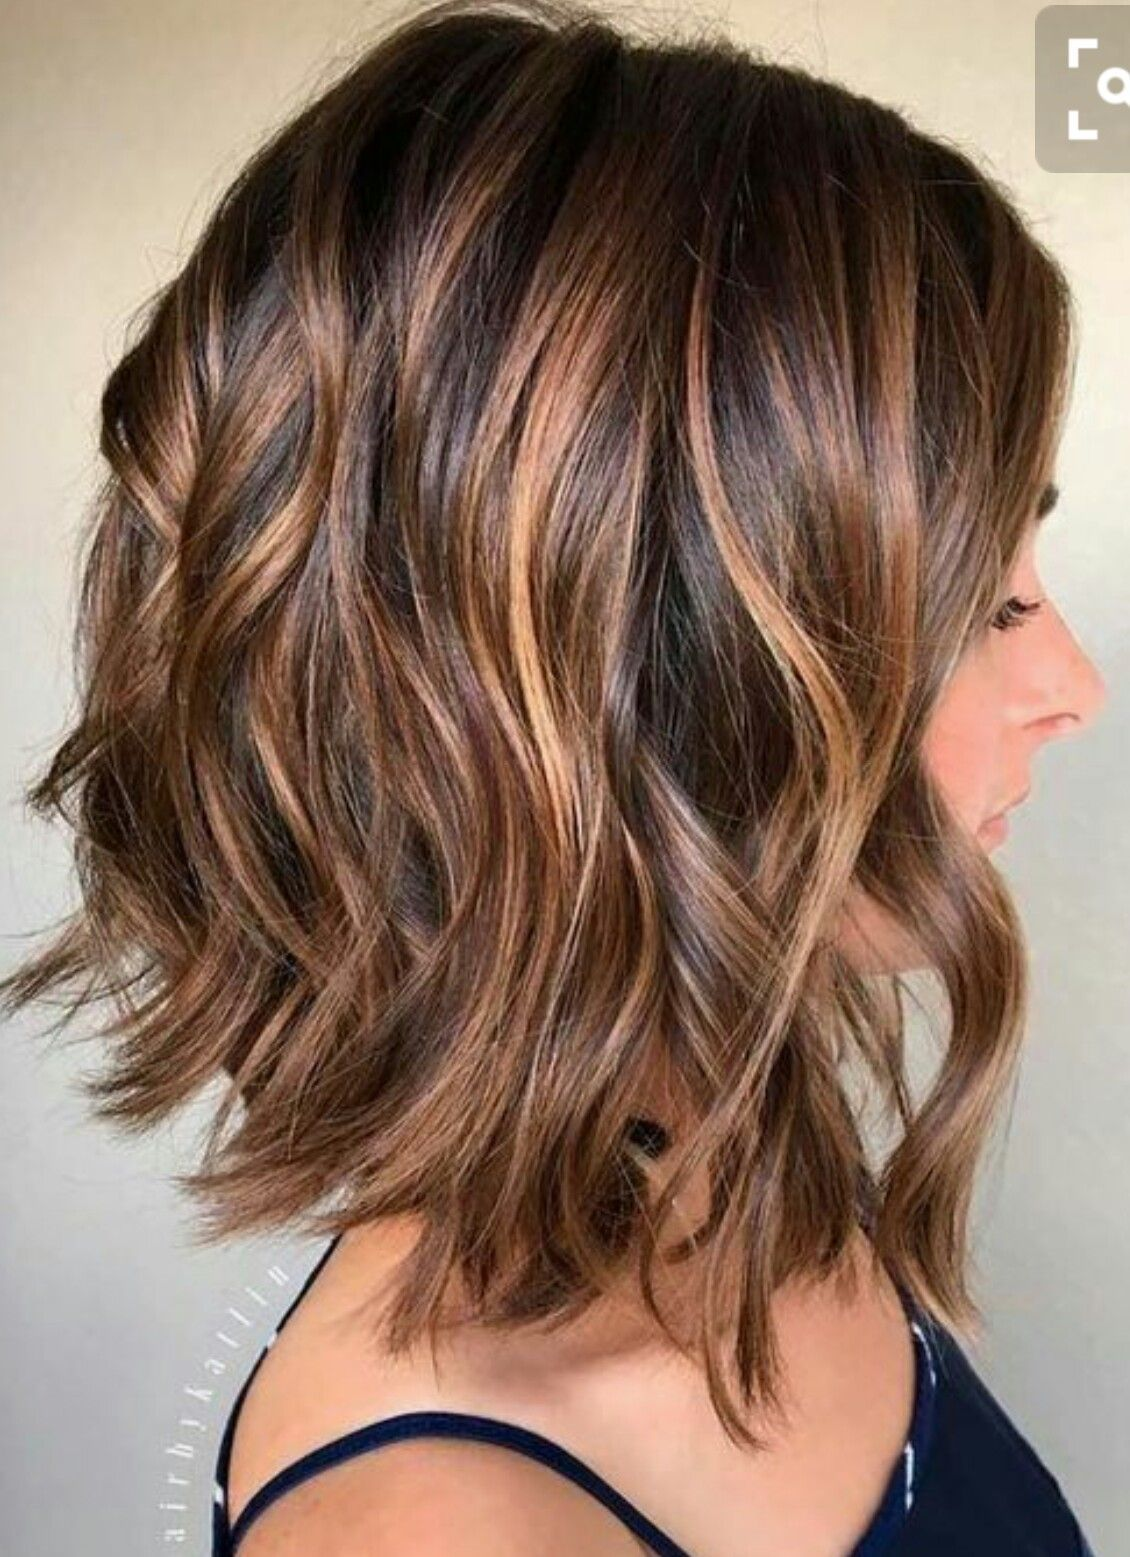 Dark Brown Short Hair With Caramel   Hair styles, Hair lengths